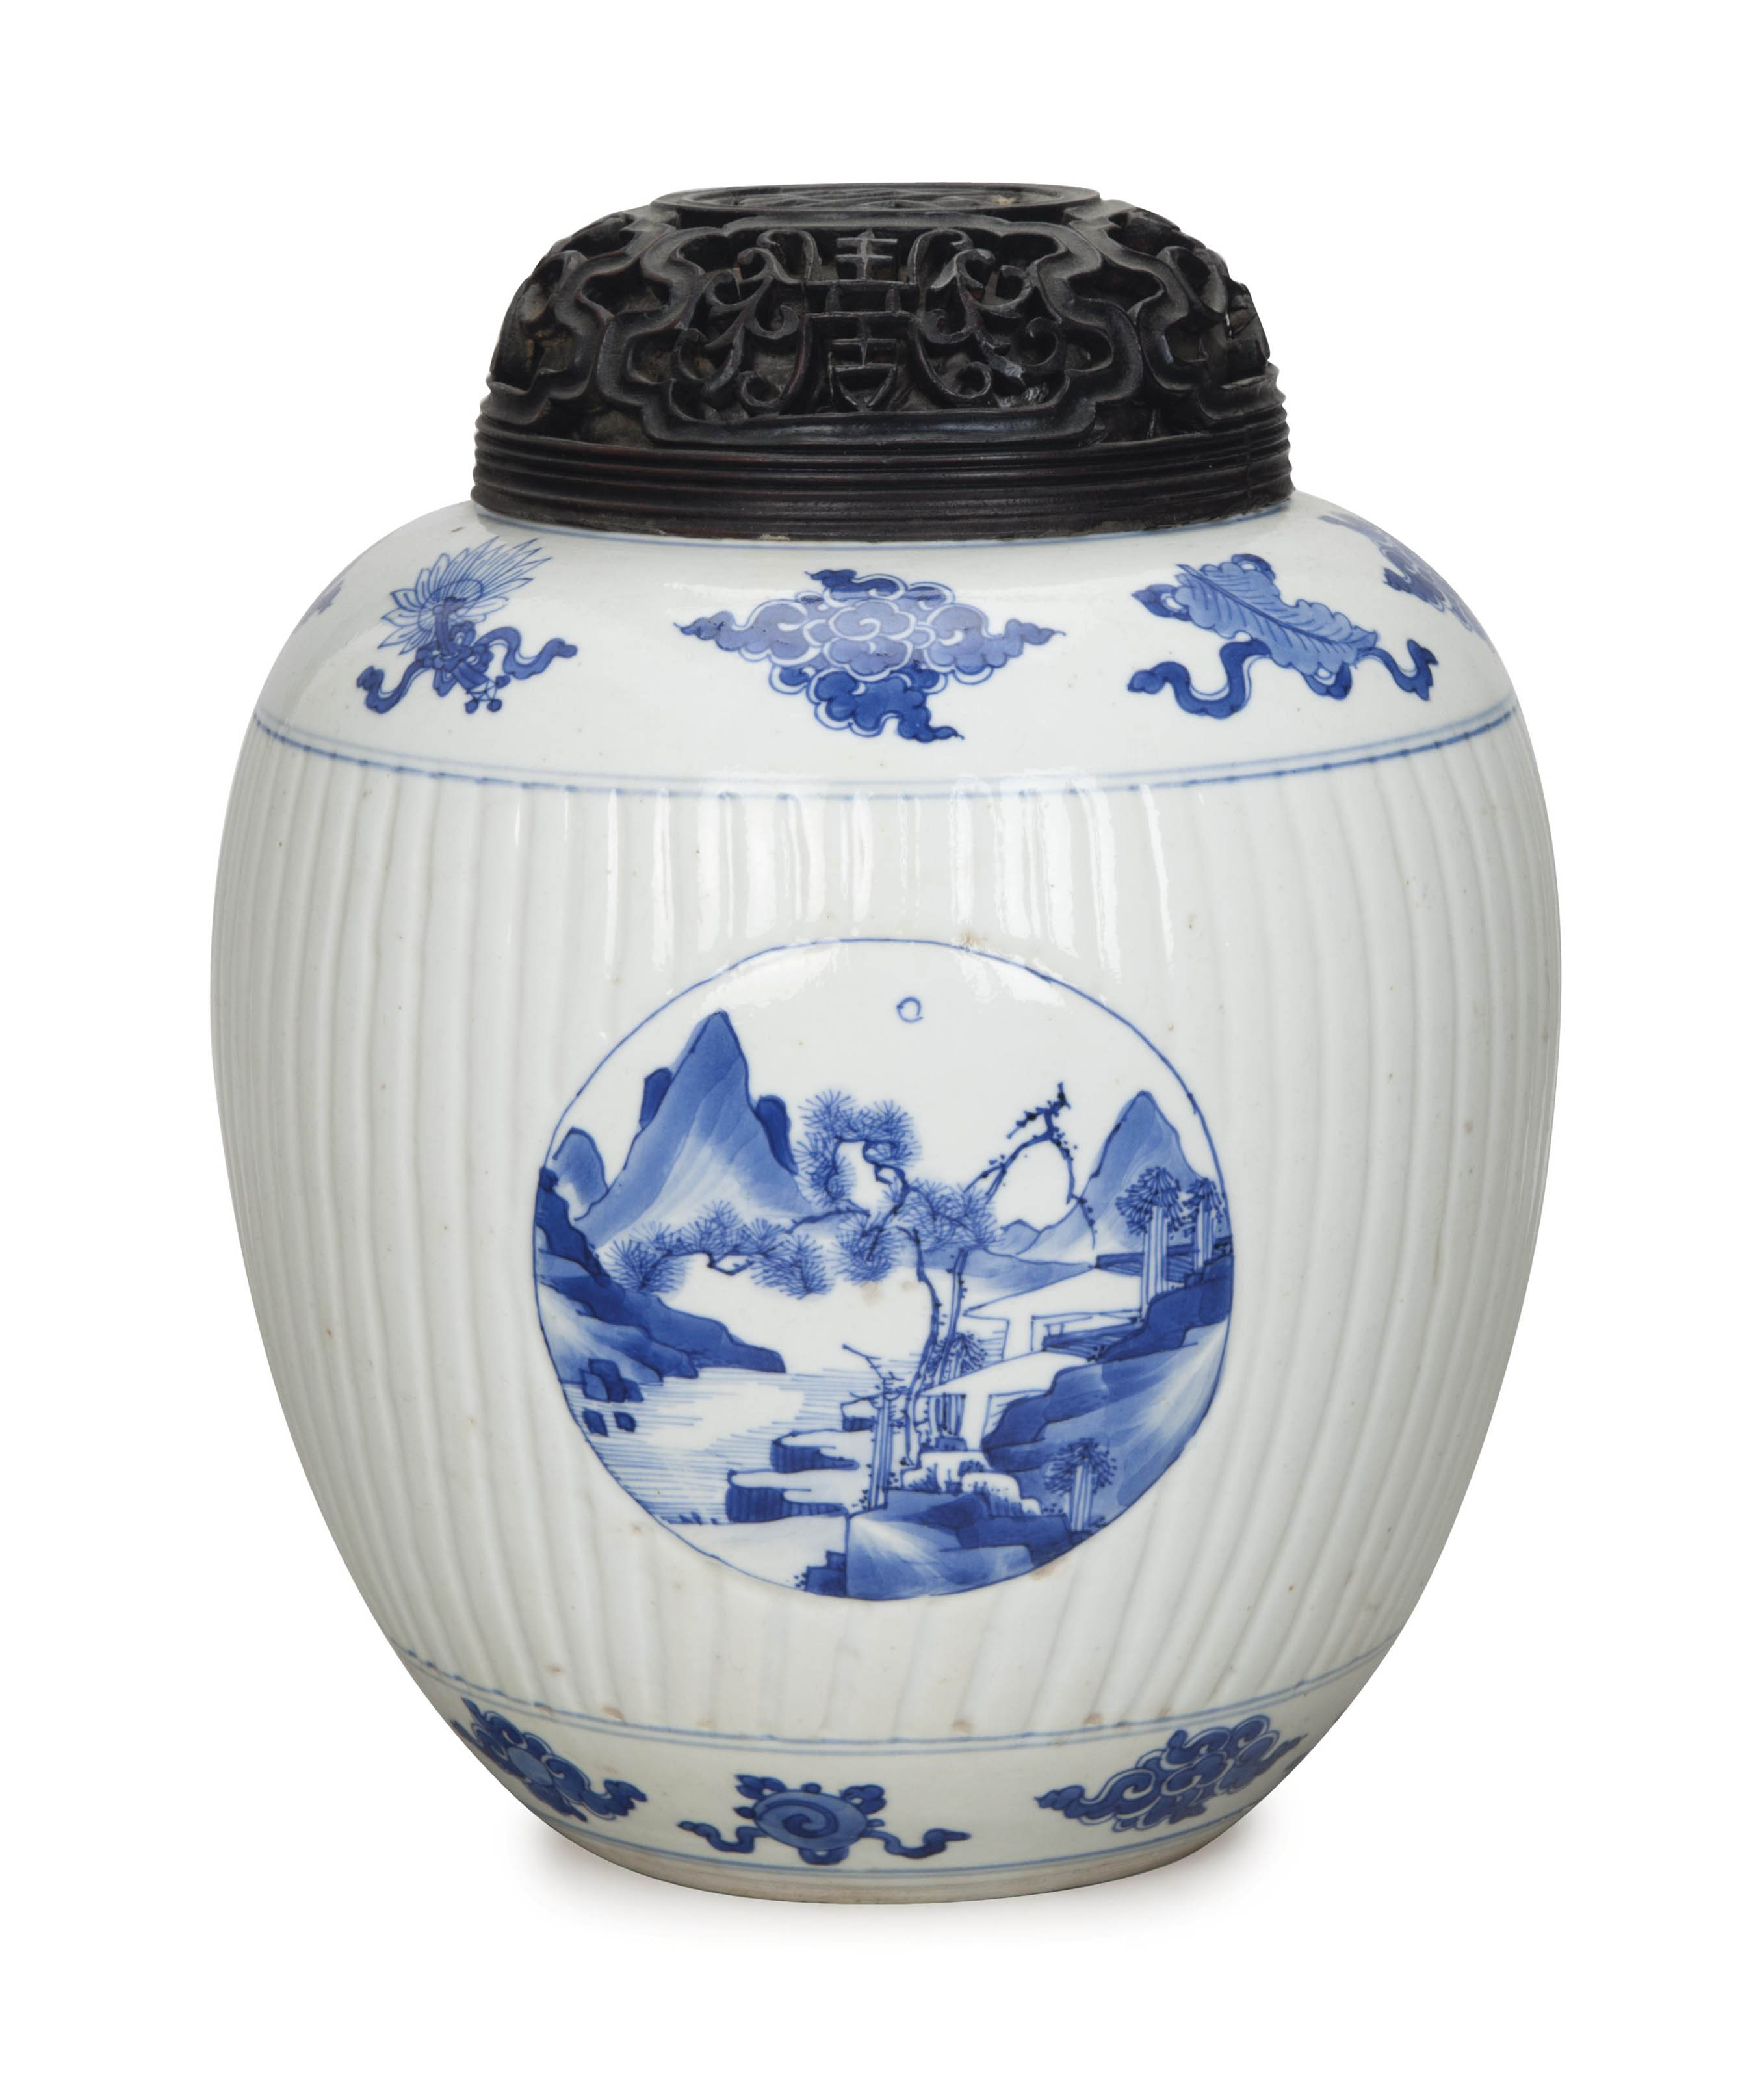 A CHINESE BLUE AND WHITE OVOID JAR WITH A PIERCED WOOD COVER,